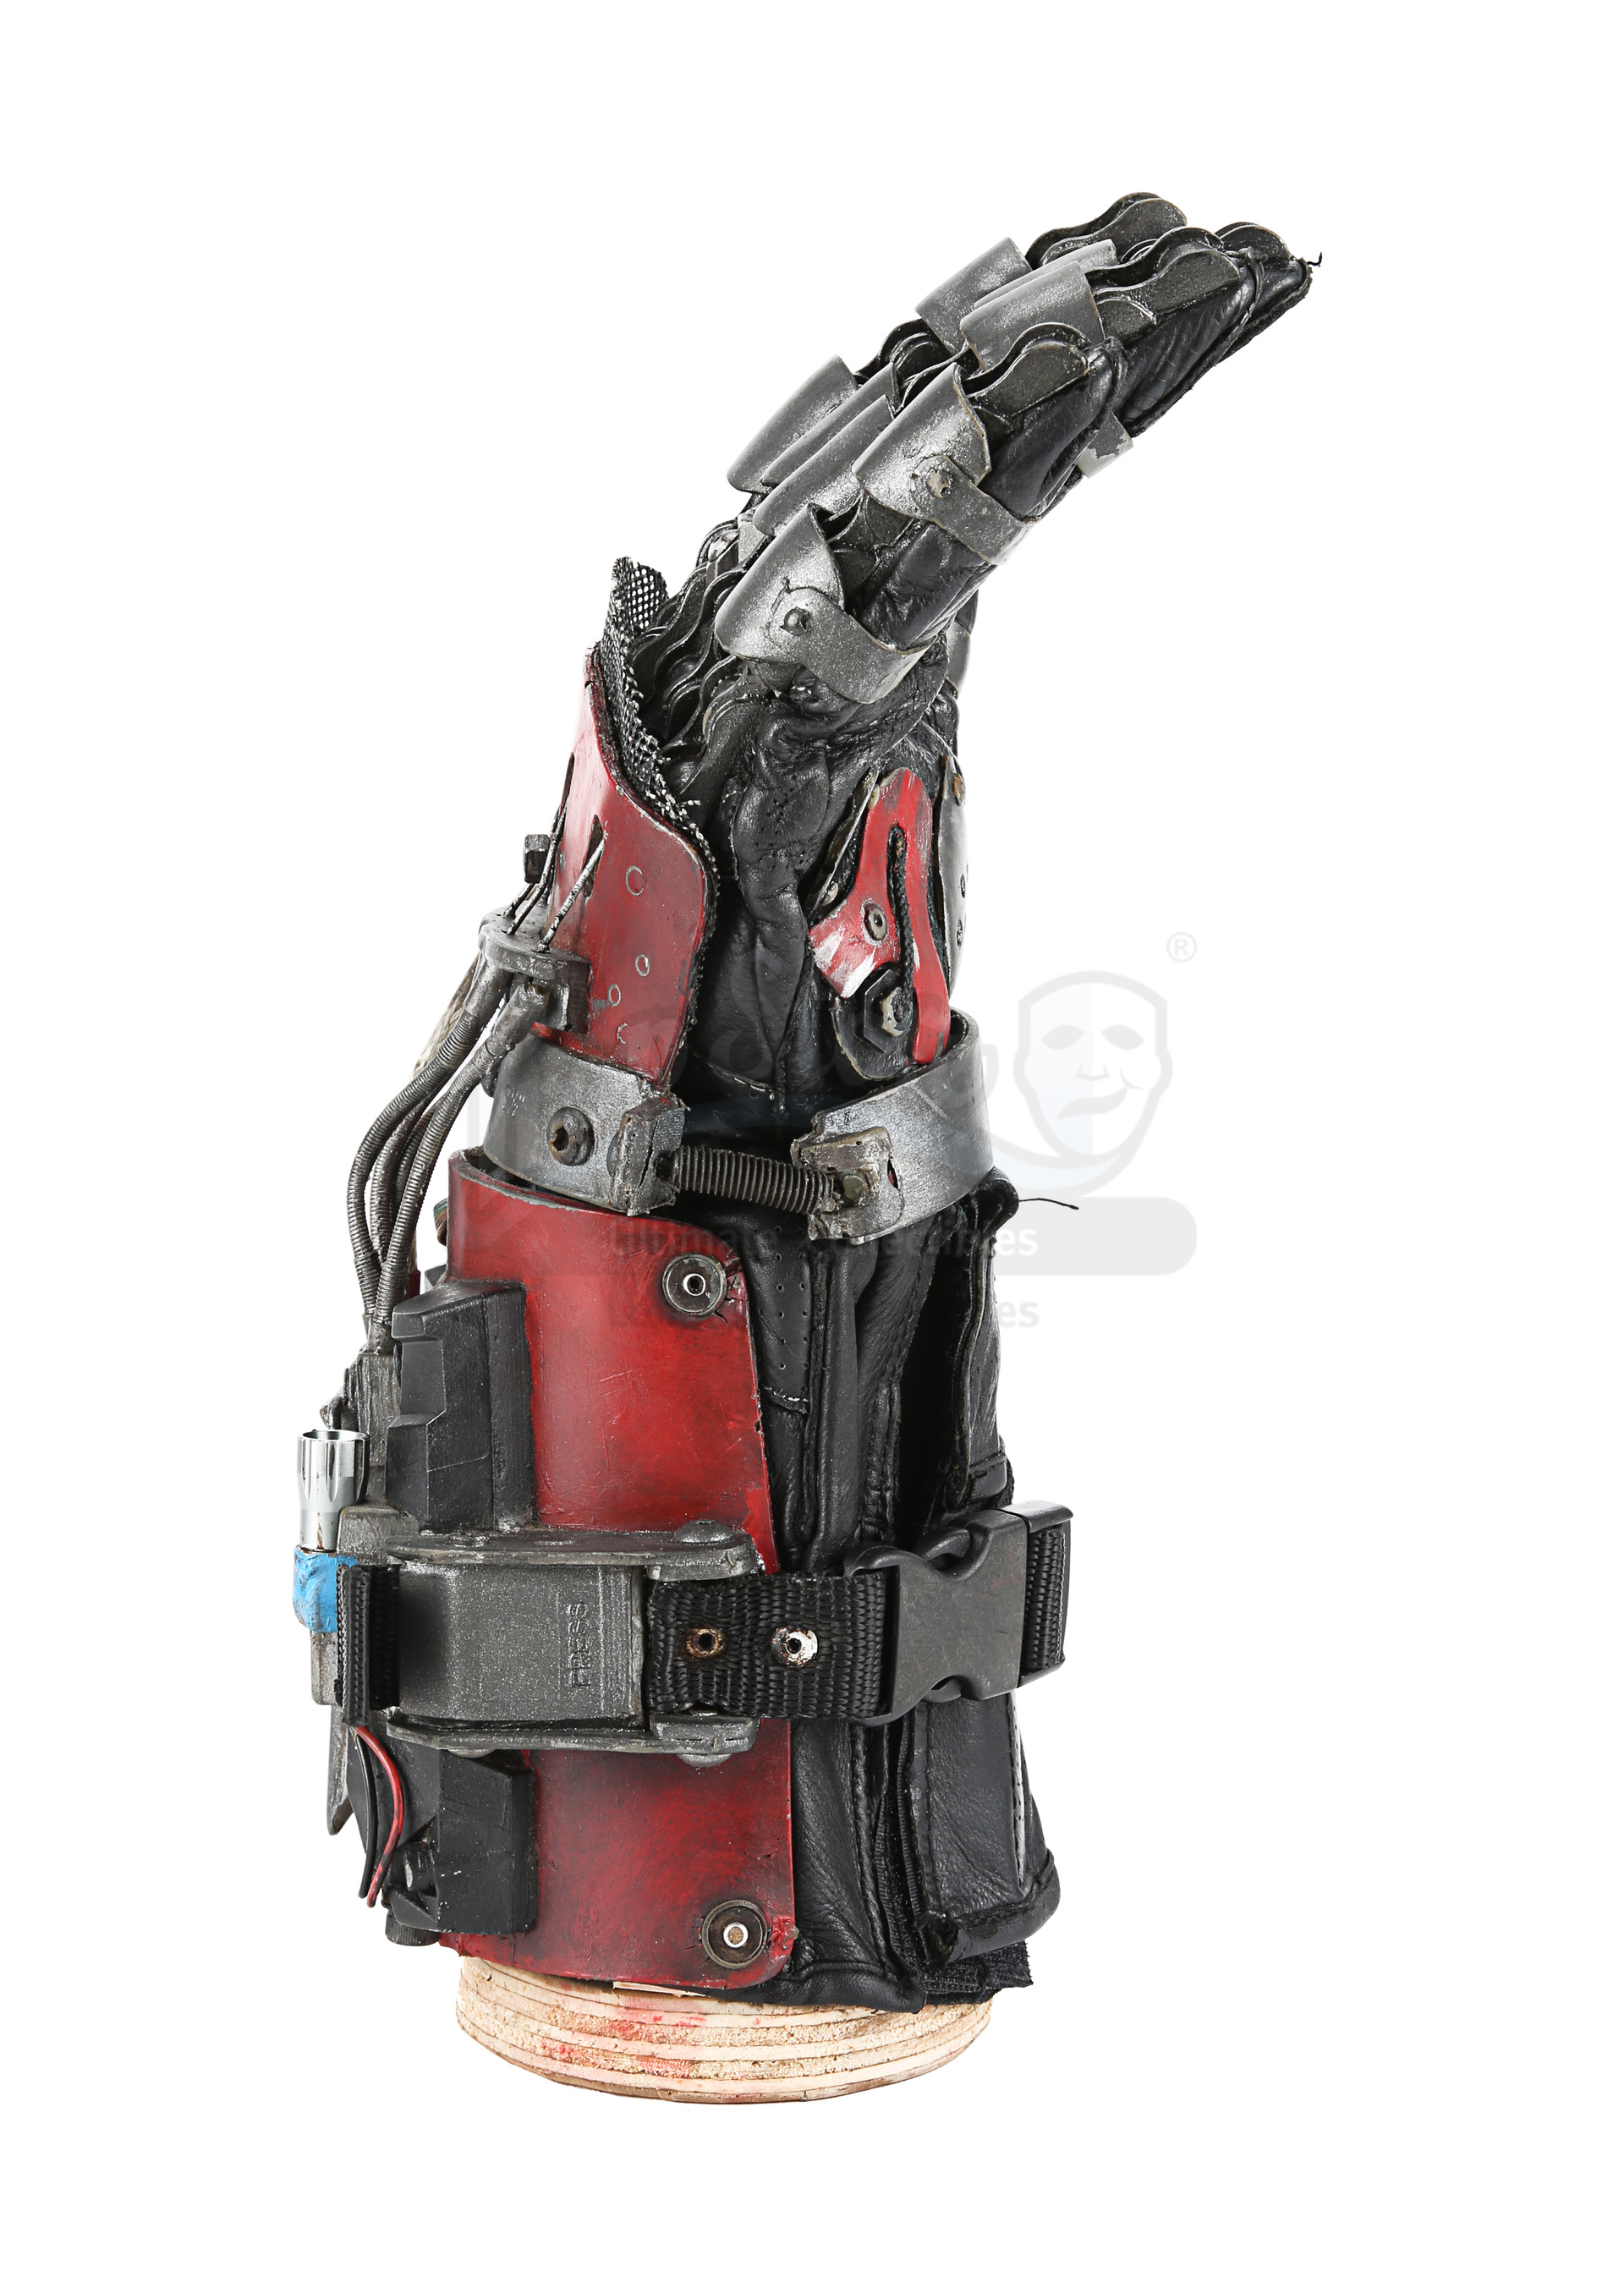 ASH VS EVIL DEAD (TV SERIES) - Ash's (Bruce Campbell) Mechanical Hand - Image 5 of 12